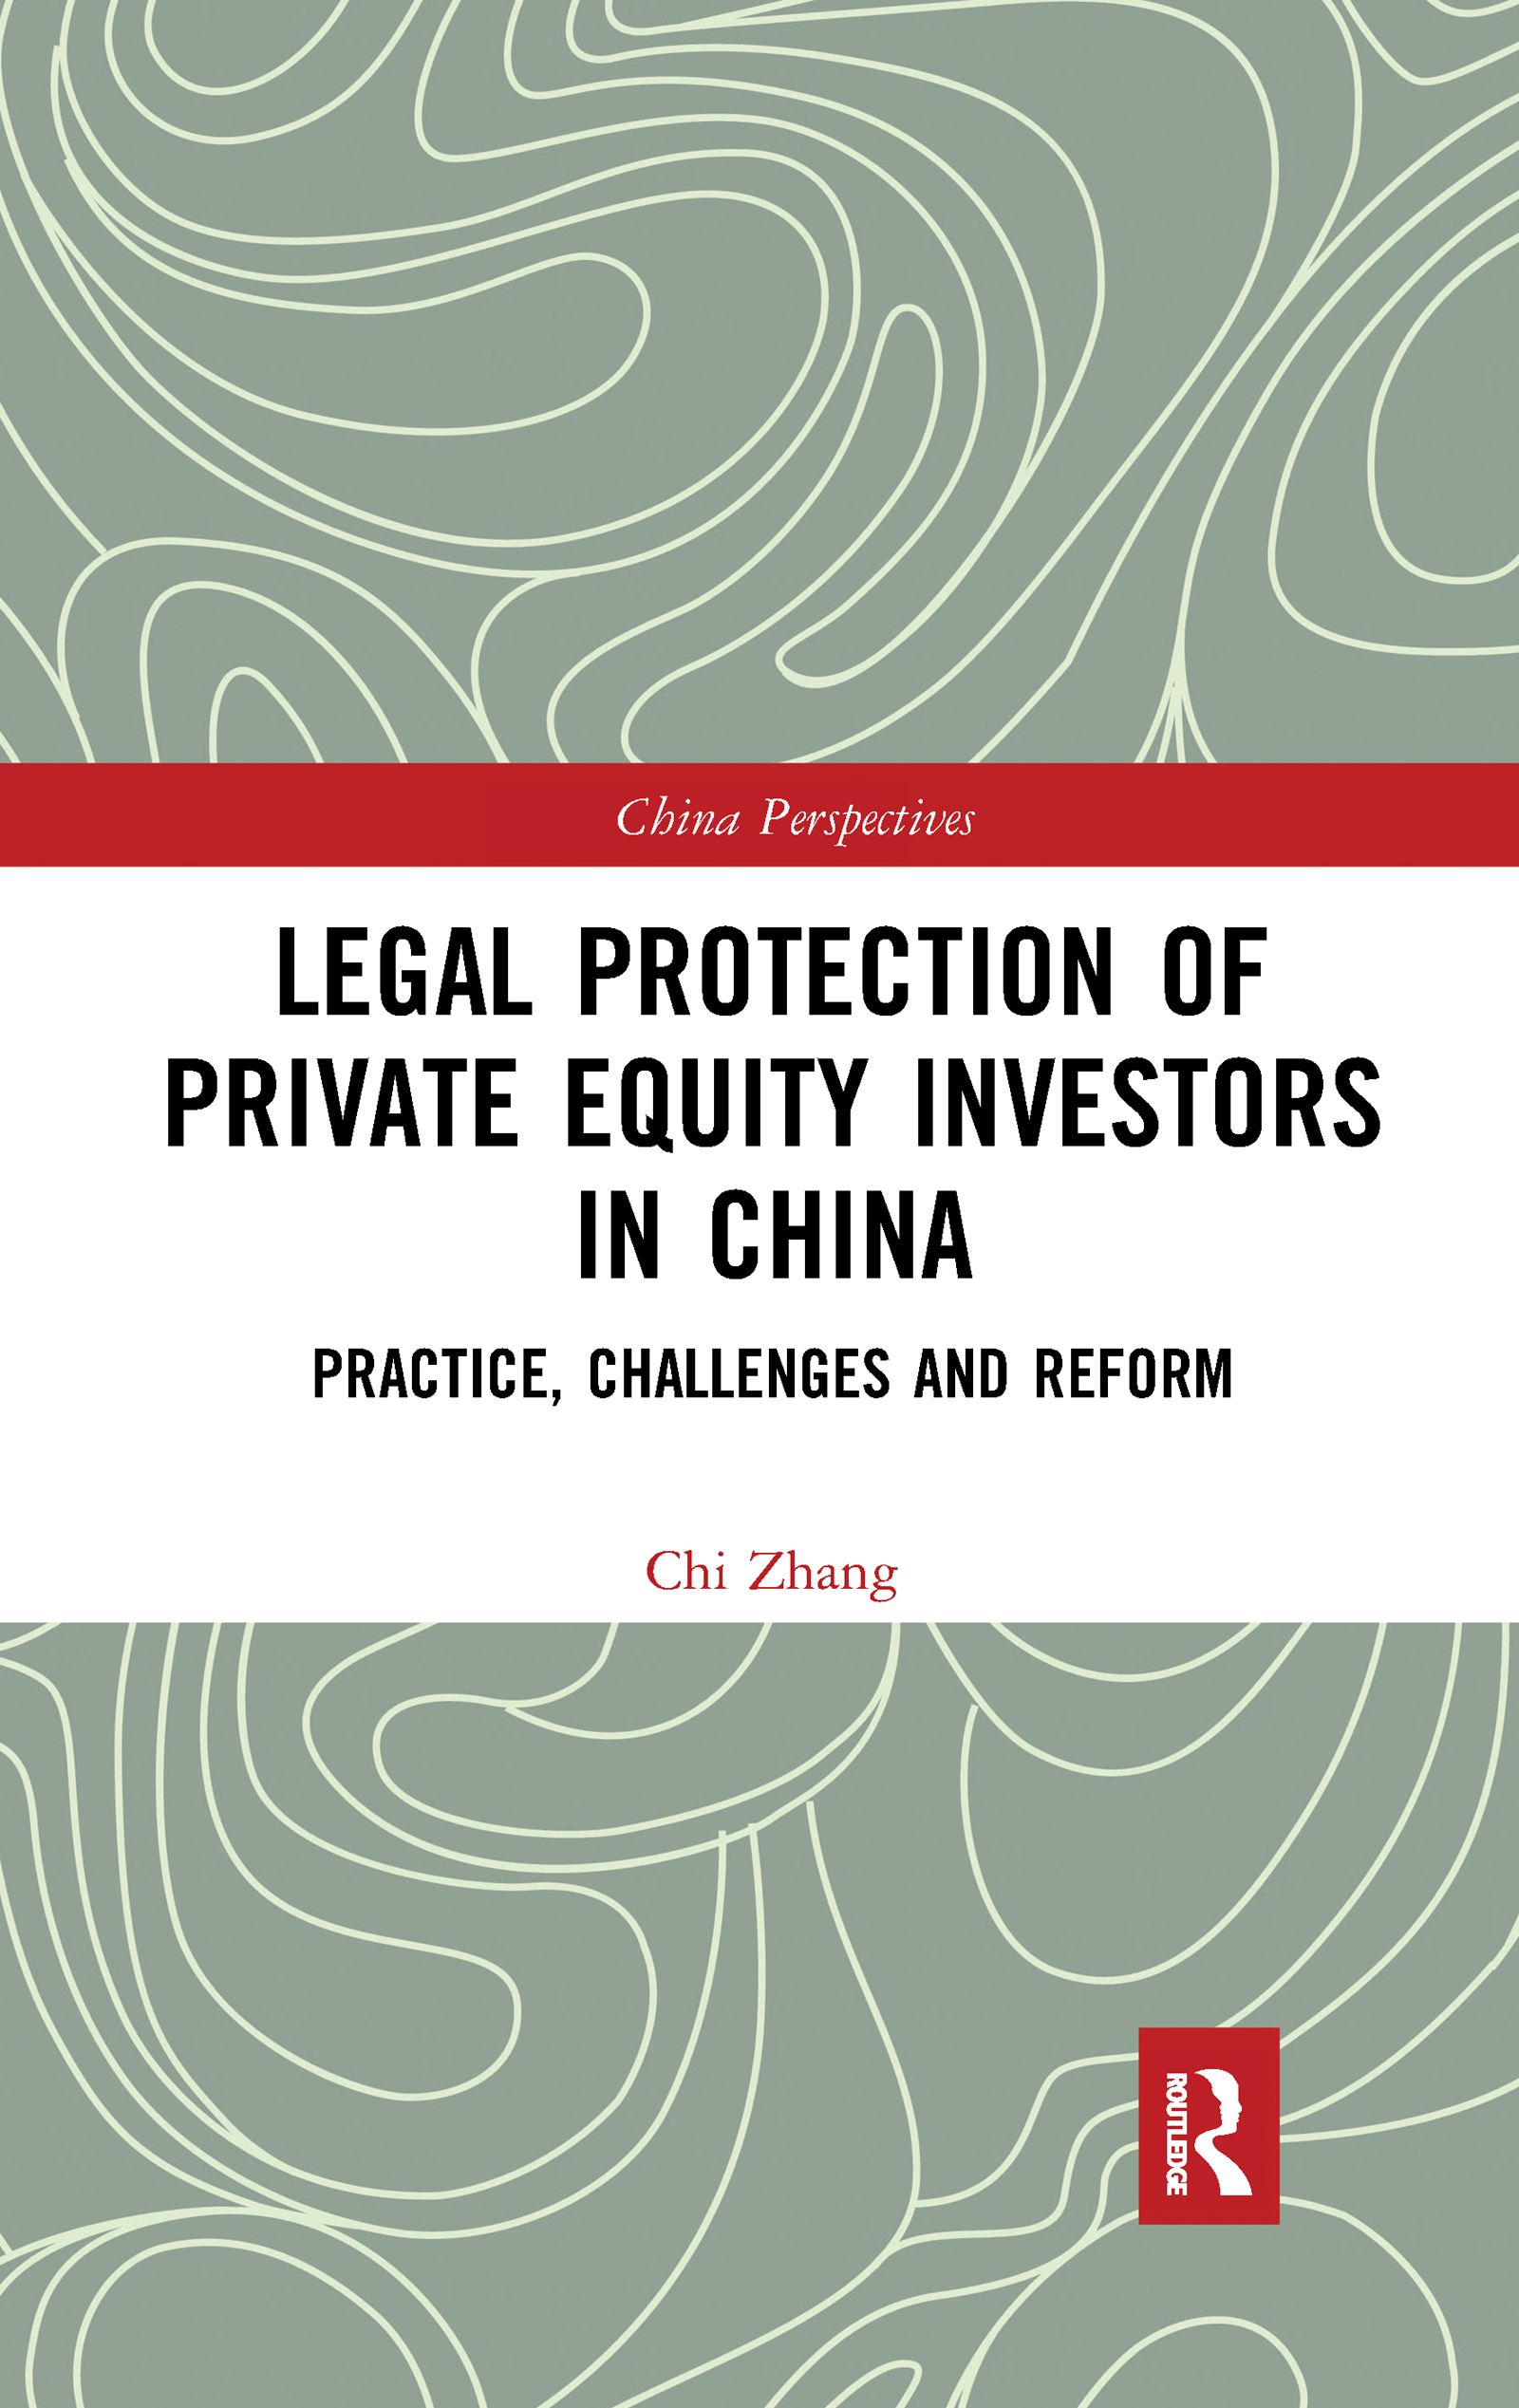 Legal Protection of Private Equity Investors in China